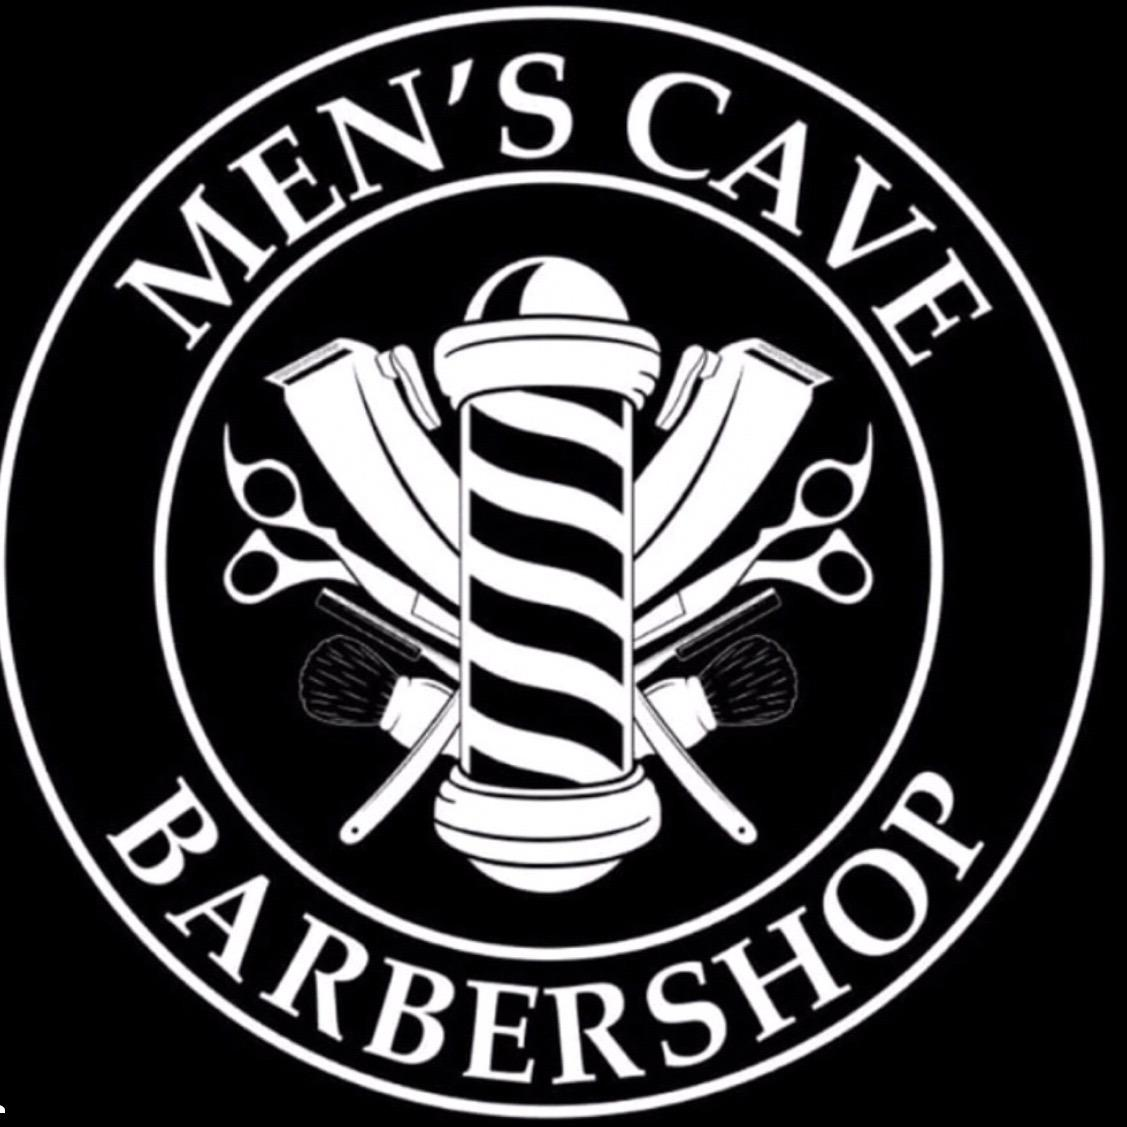 Men's Cave Barber Shop